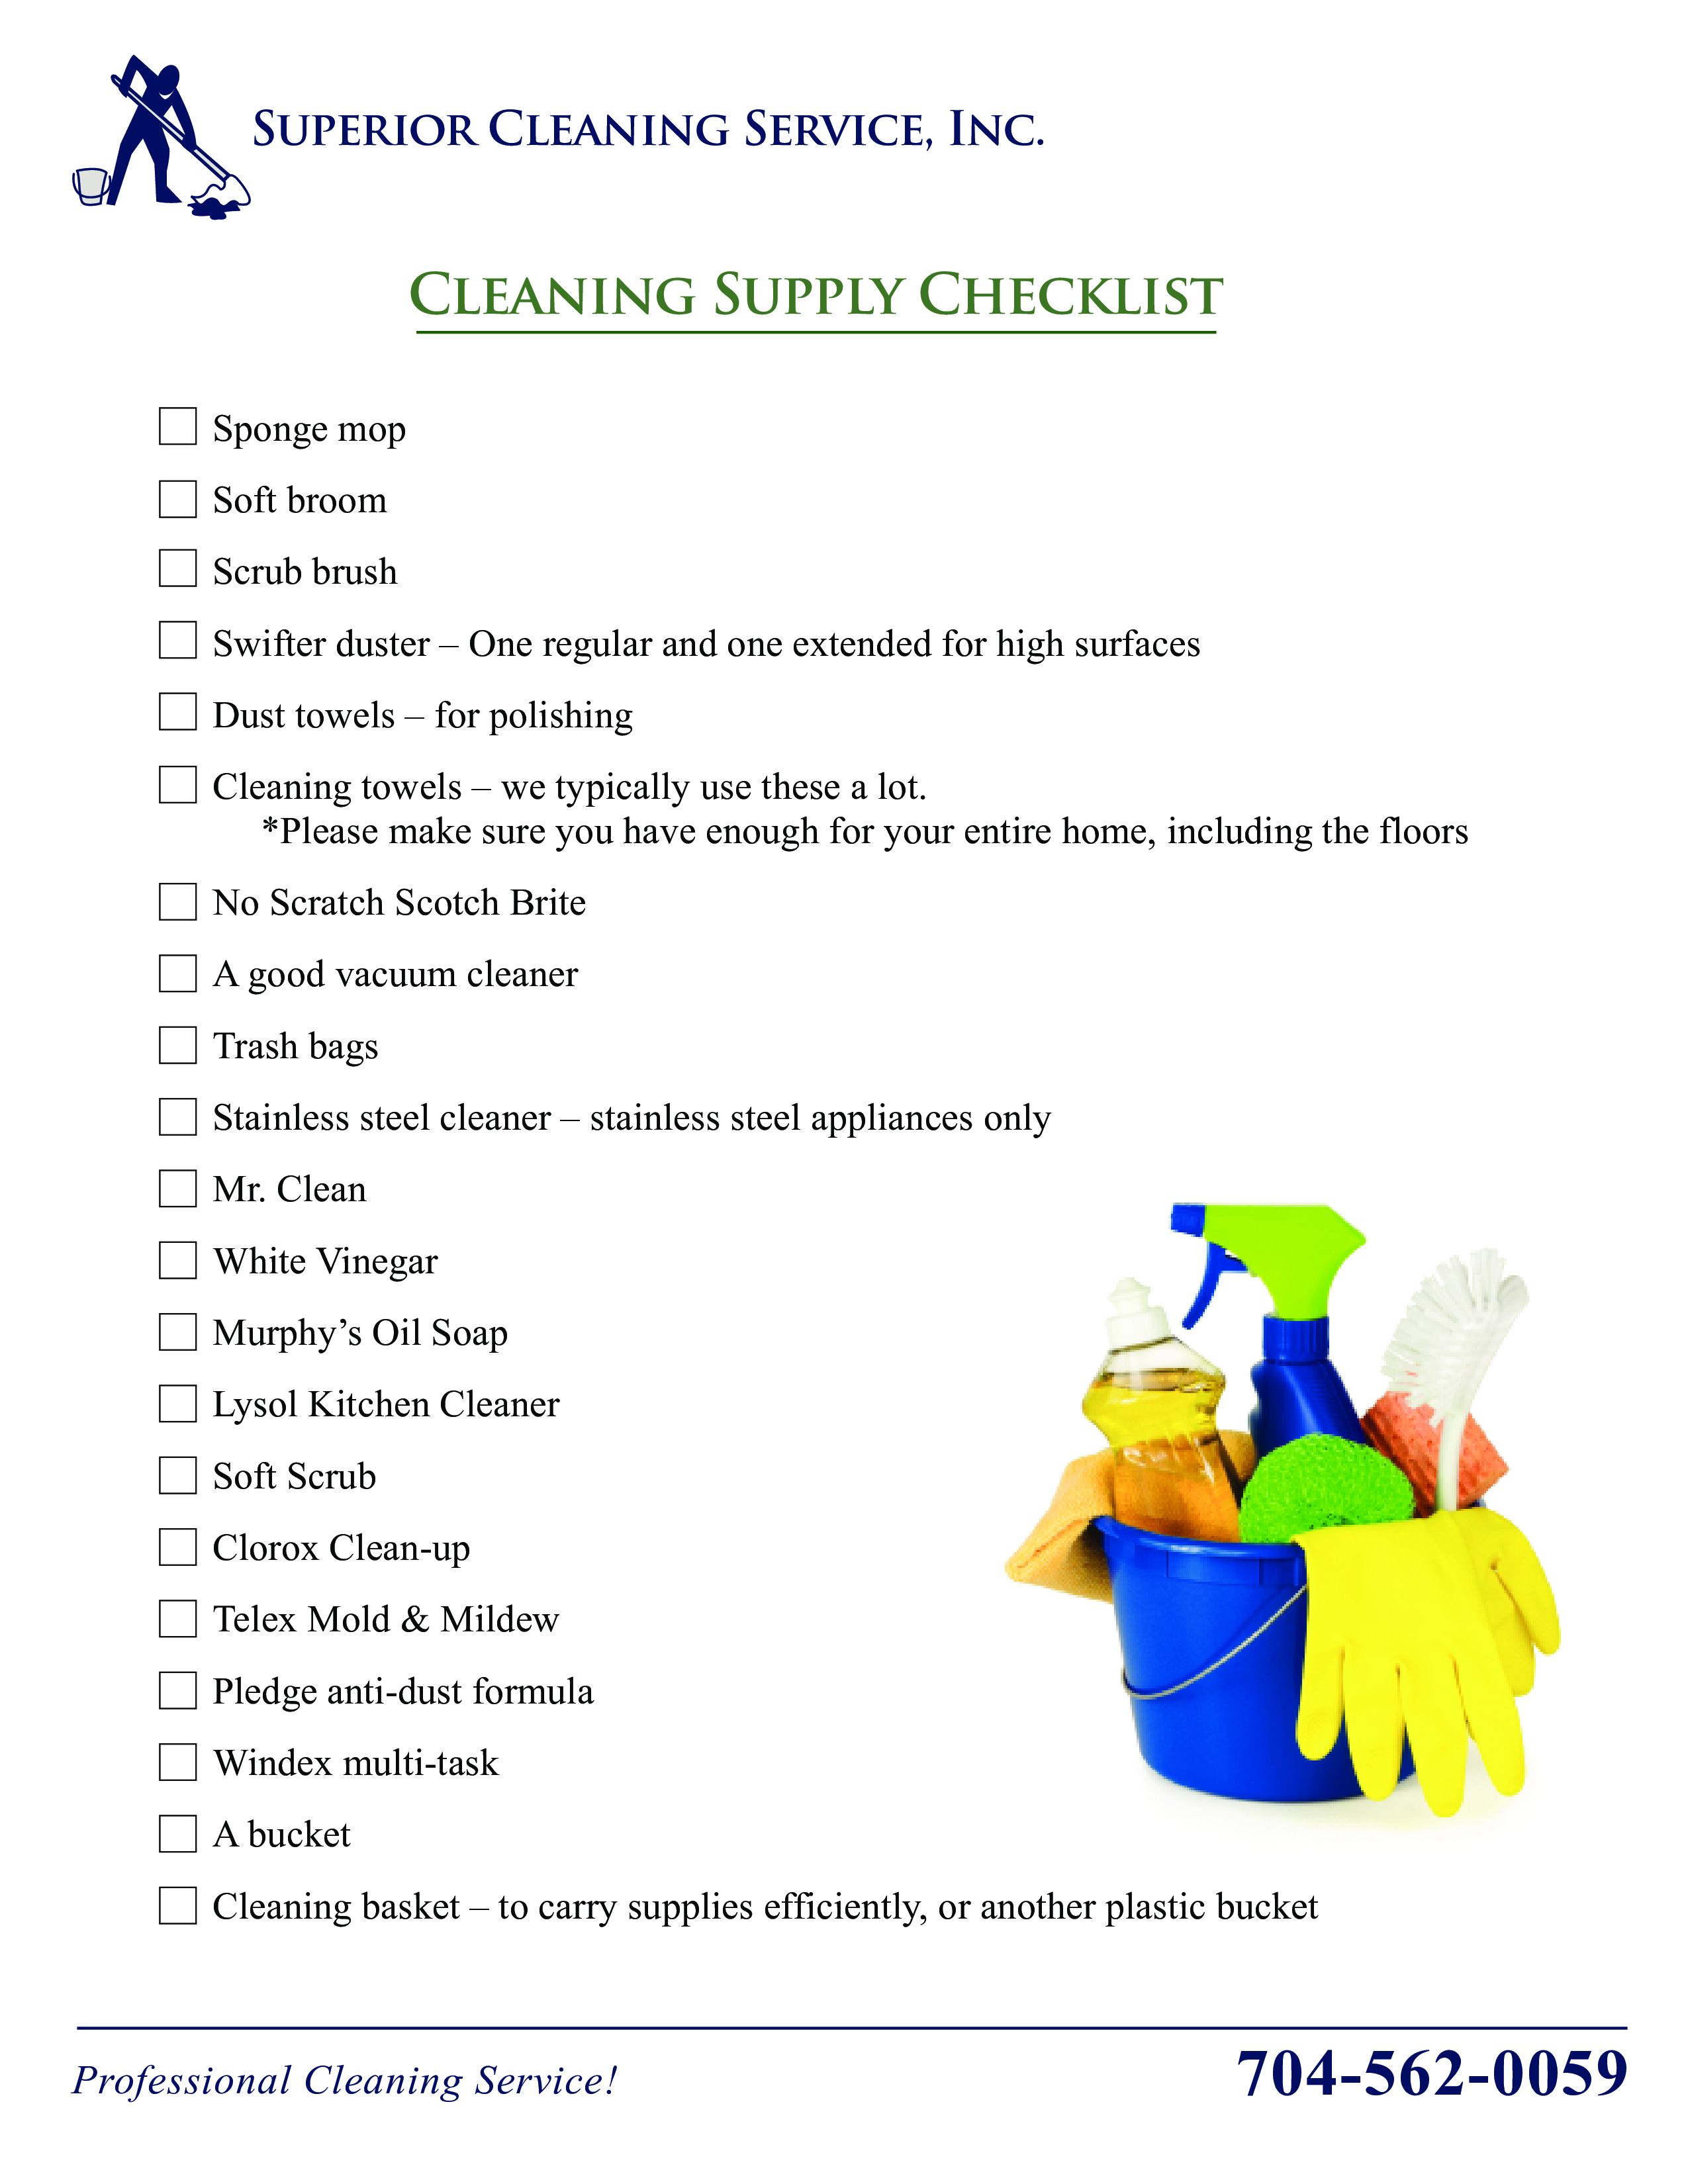 Cleaning Supply Checklist Main Image